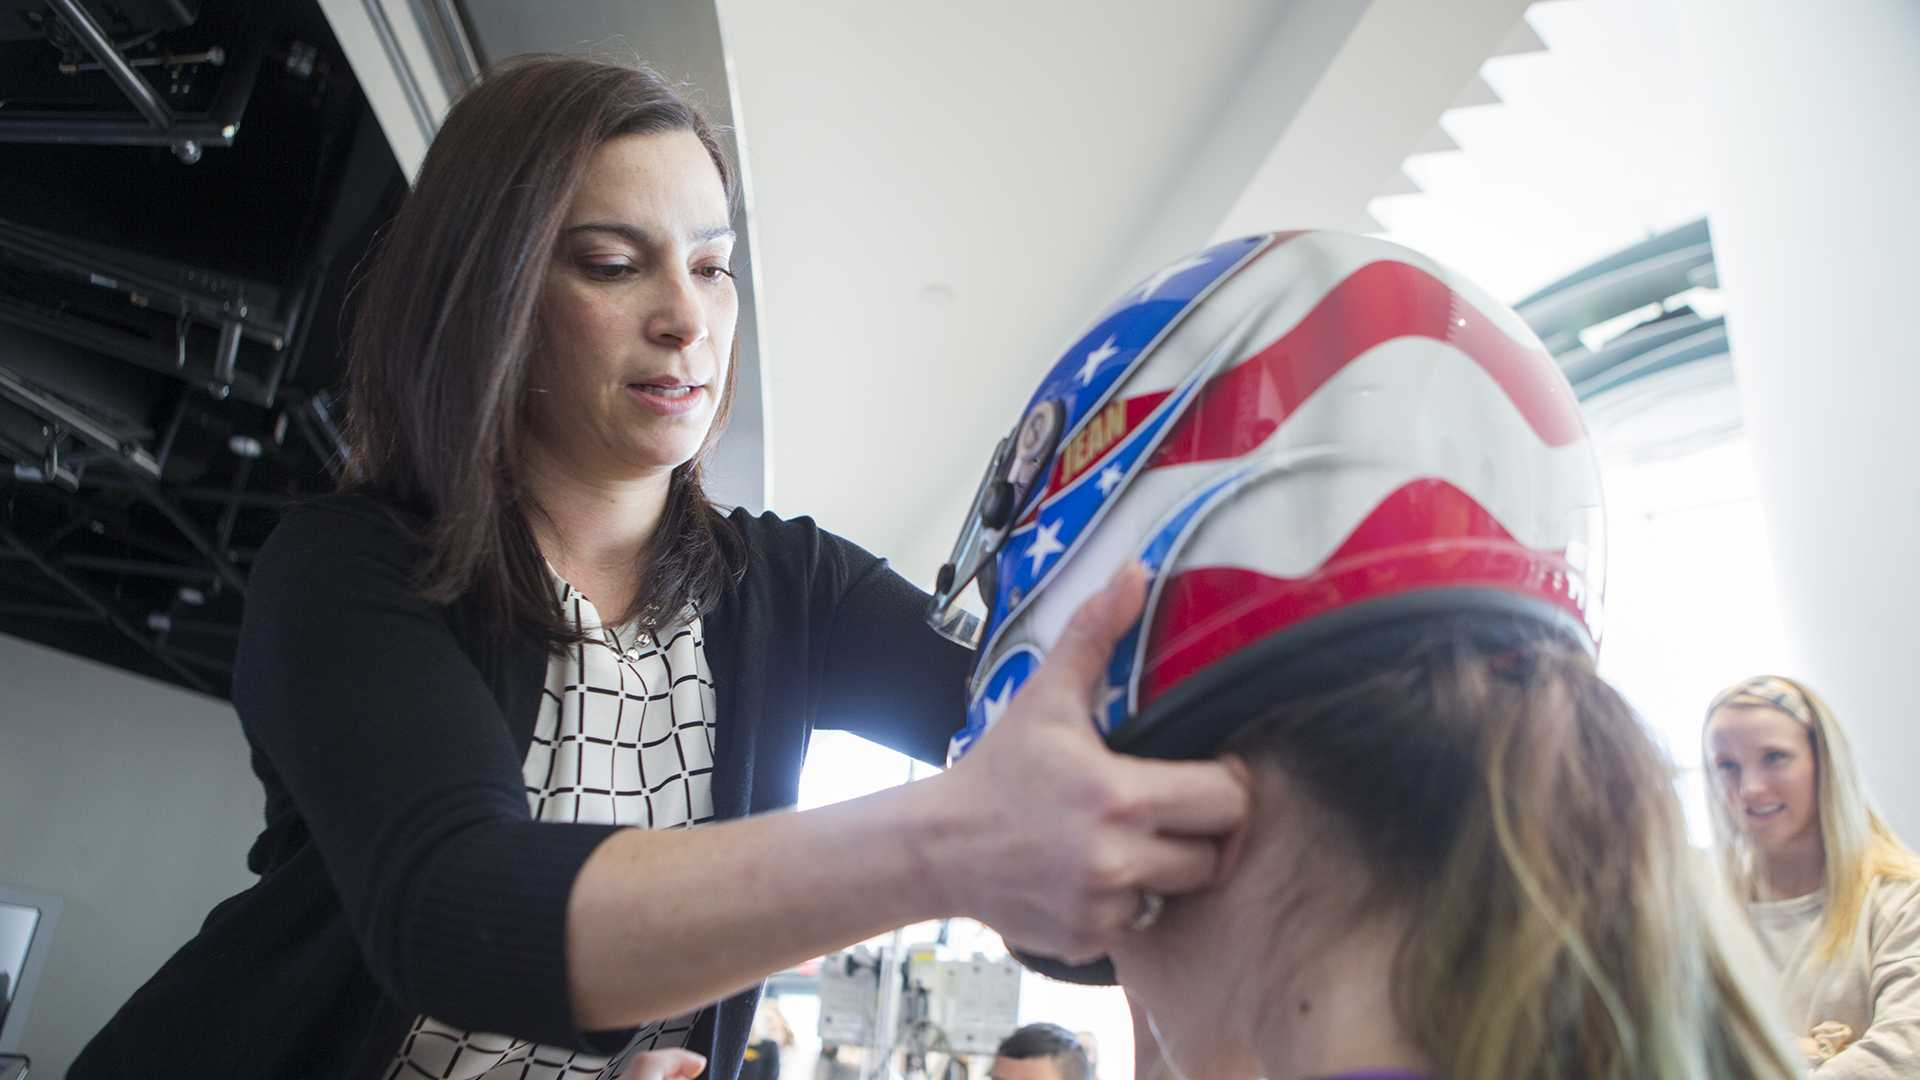 U.S. Olympian Jean Prahm helps a Stead Family Children's Hospital patient try on her bobsled helmet during Prahm's visit to the Stead Family Children's Hospital on Tuesday, Feb. 13, 2018. Prahm was on the U.S. Olympic women's bobsled team from 1996-2006. (Lily Smith/The Daily Iowan)